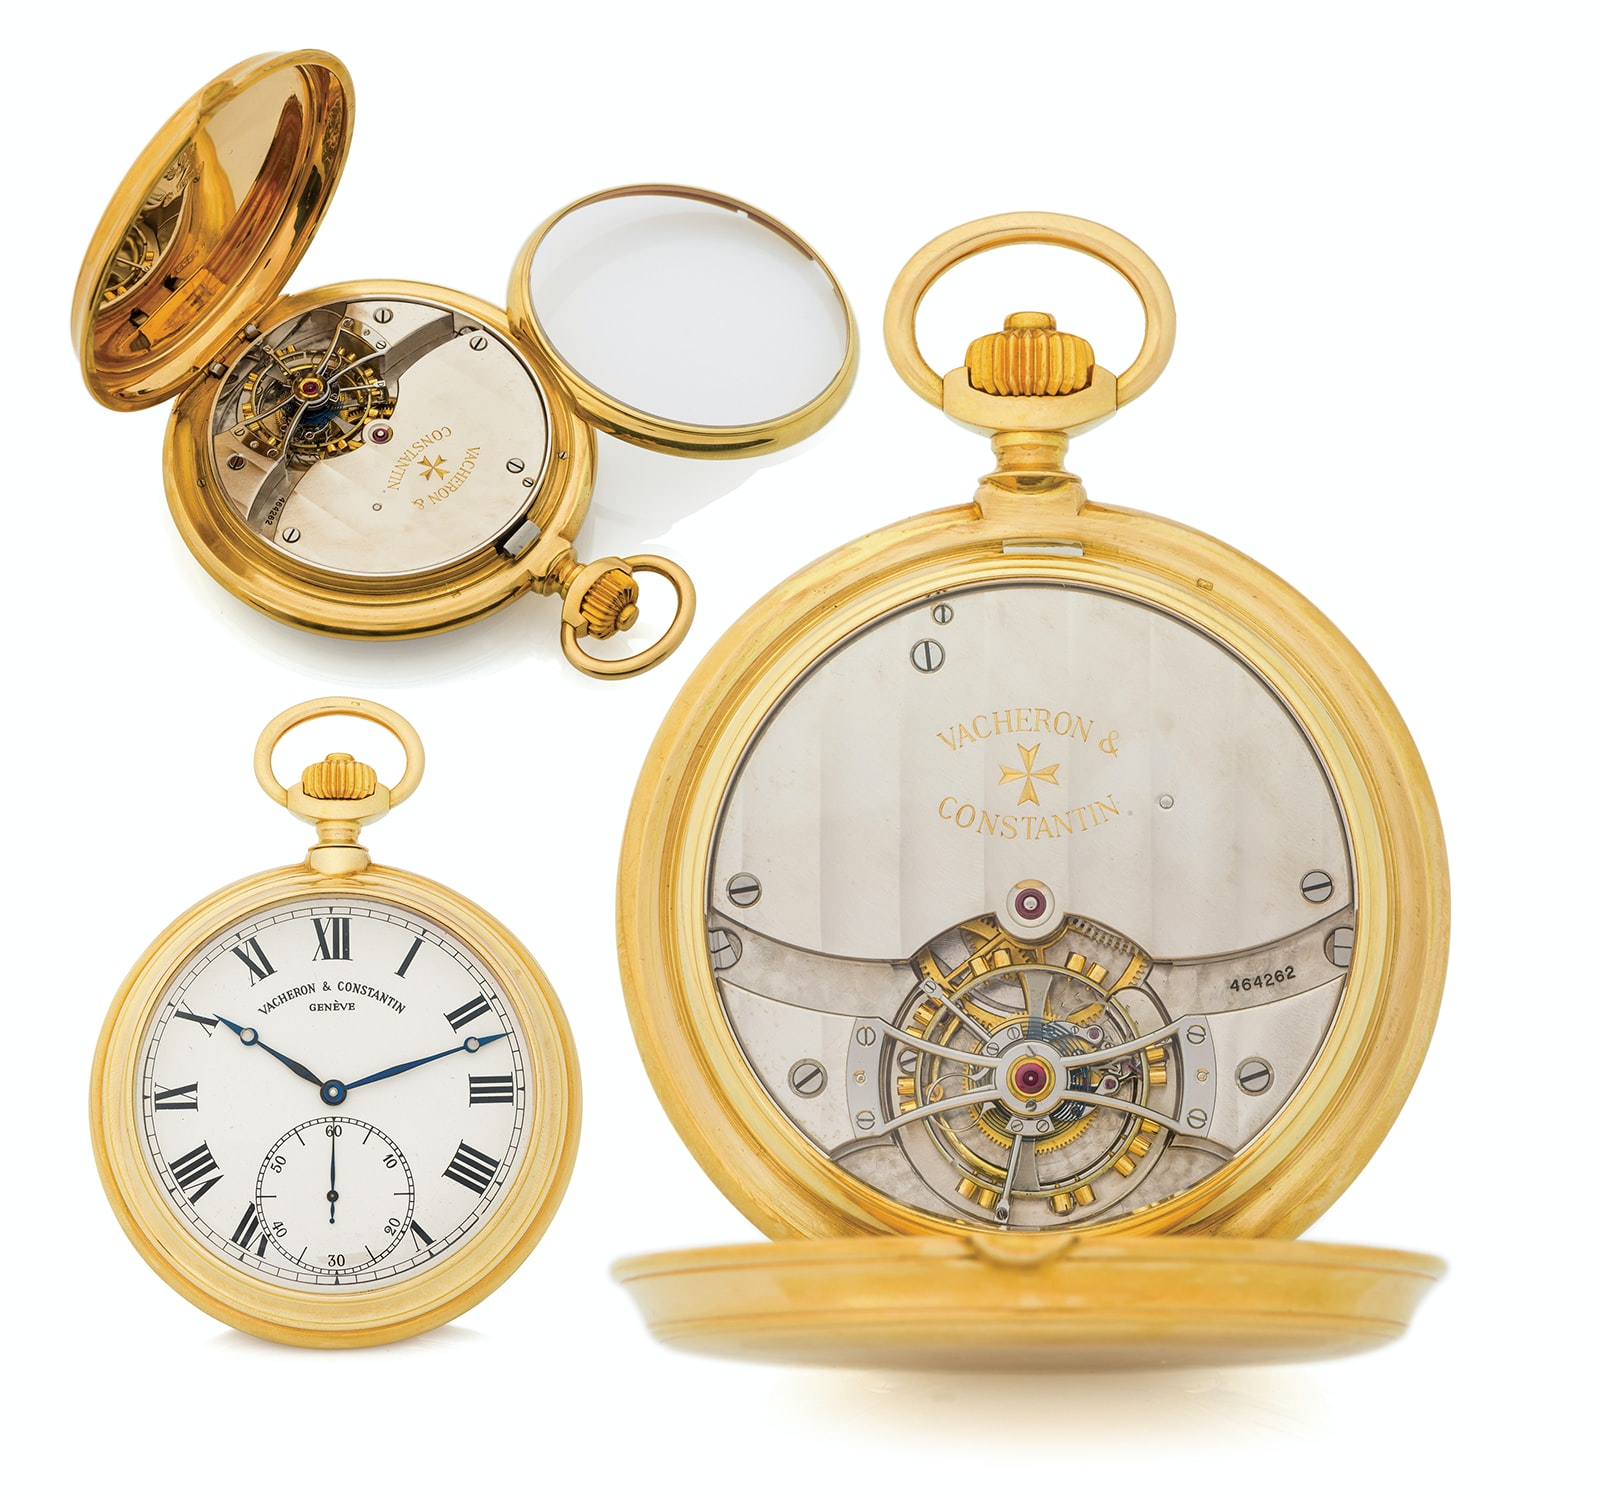 Vacheron Observatory Pocket Tourbillon 3 Seven Pocket Watches That Will Make You Forget Wristwatches (And Wonder Why They've Gotten So Pricey) From The Antiquorum 'Important Modern & Vintage Timepieces' Auction Seven Pocket Watches That Will Make You Forget Wristwatches (And Wonder Why They've Gotten So Pricey) From The Antiquorum 'Important Modern & Vintage Timepieces' Auction d2